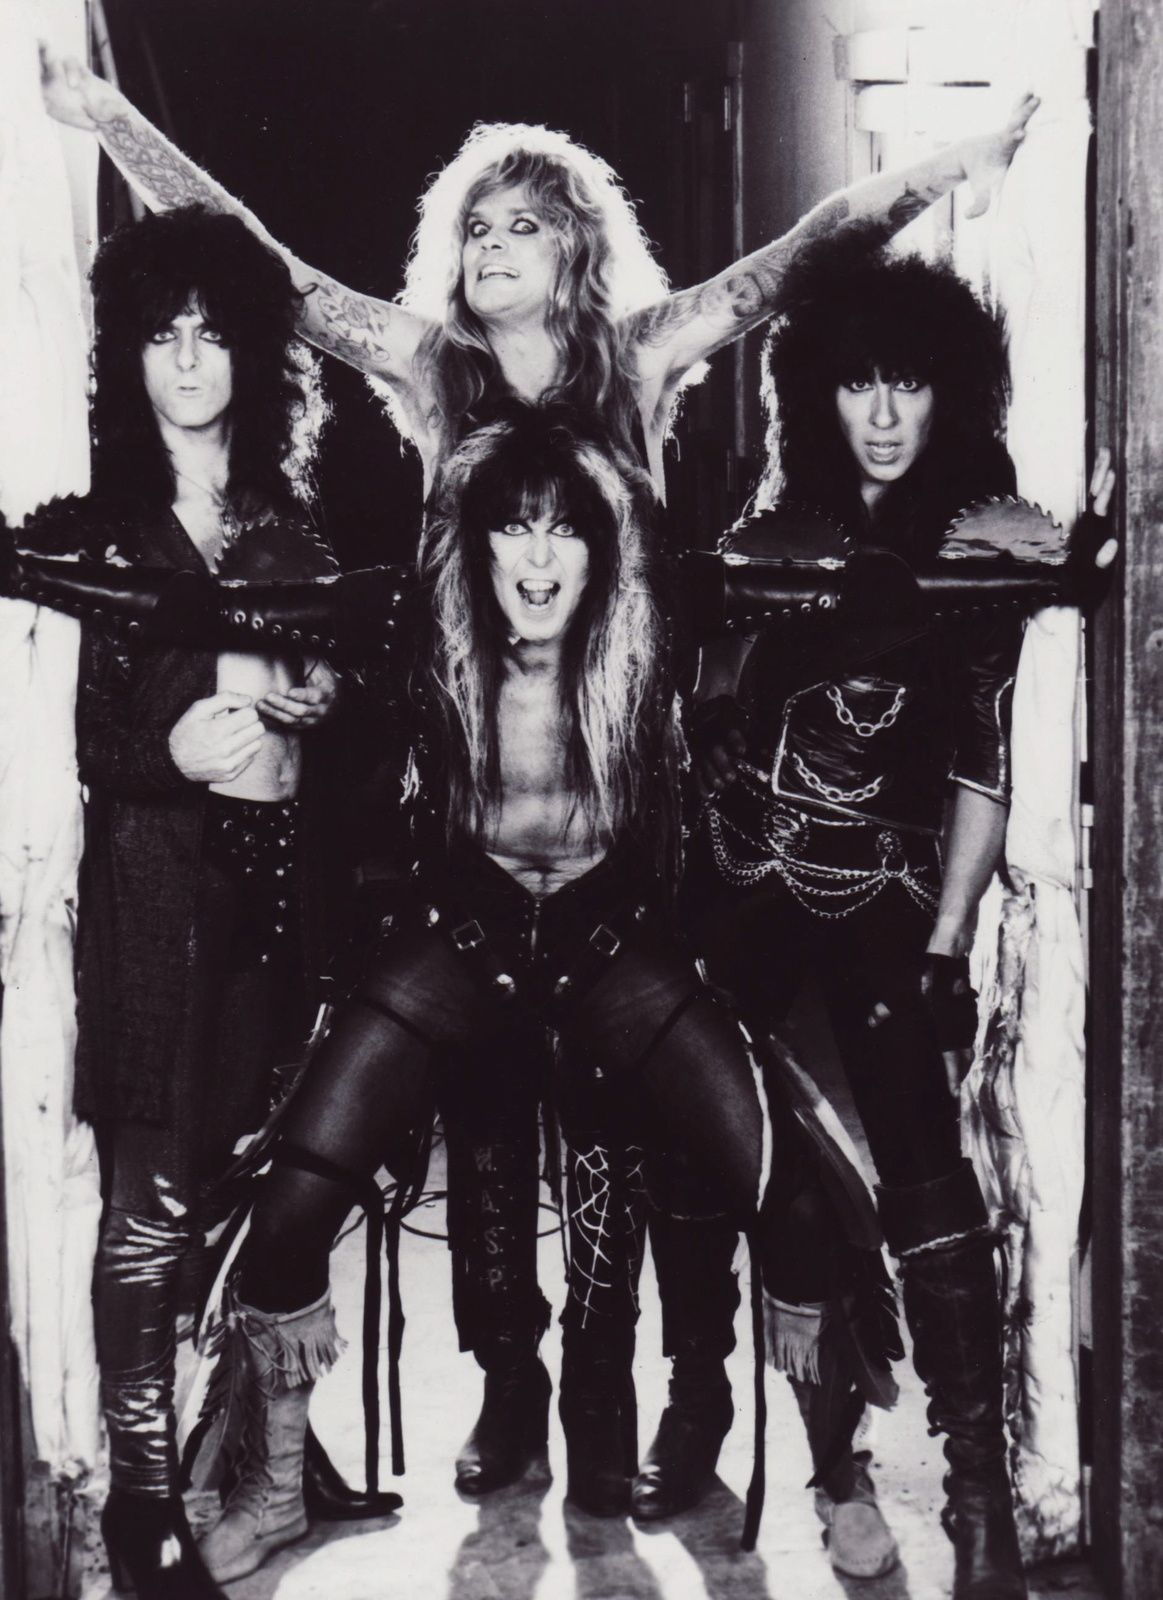 Blackie Lawless, Chris Holmes, Steve Riley, Randy Piper (W.A.S.P.)